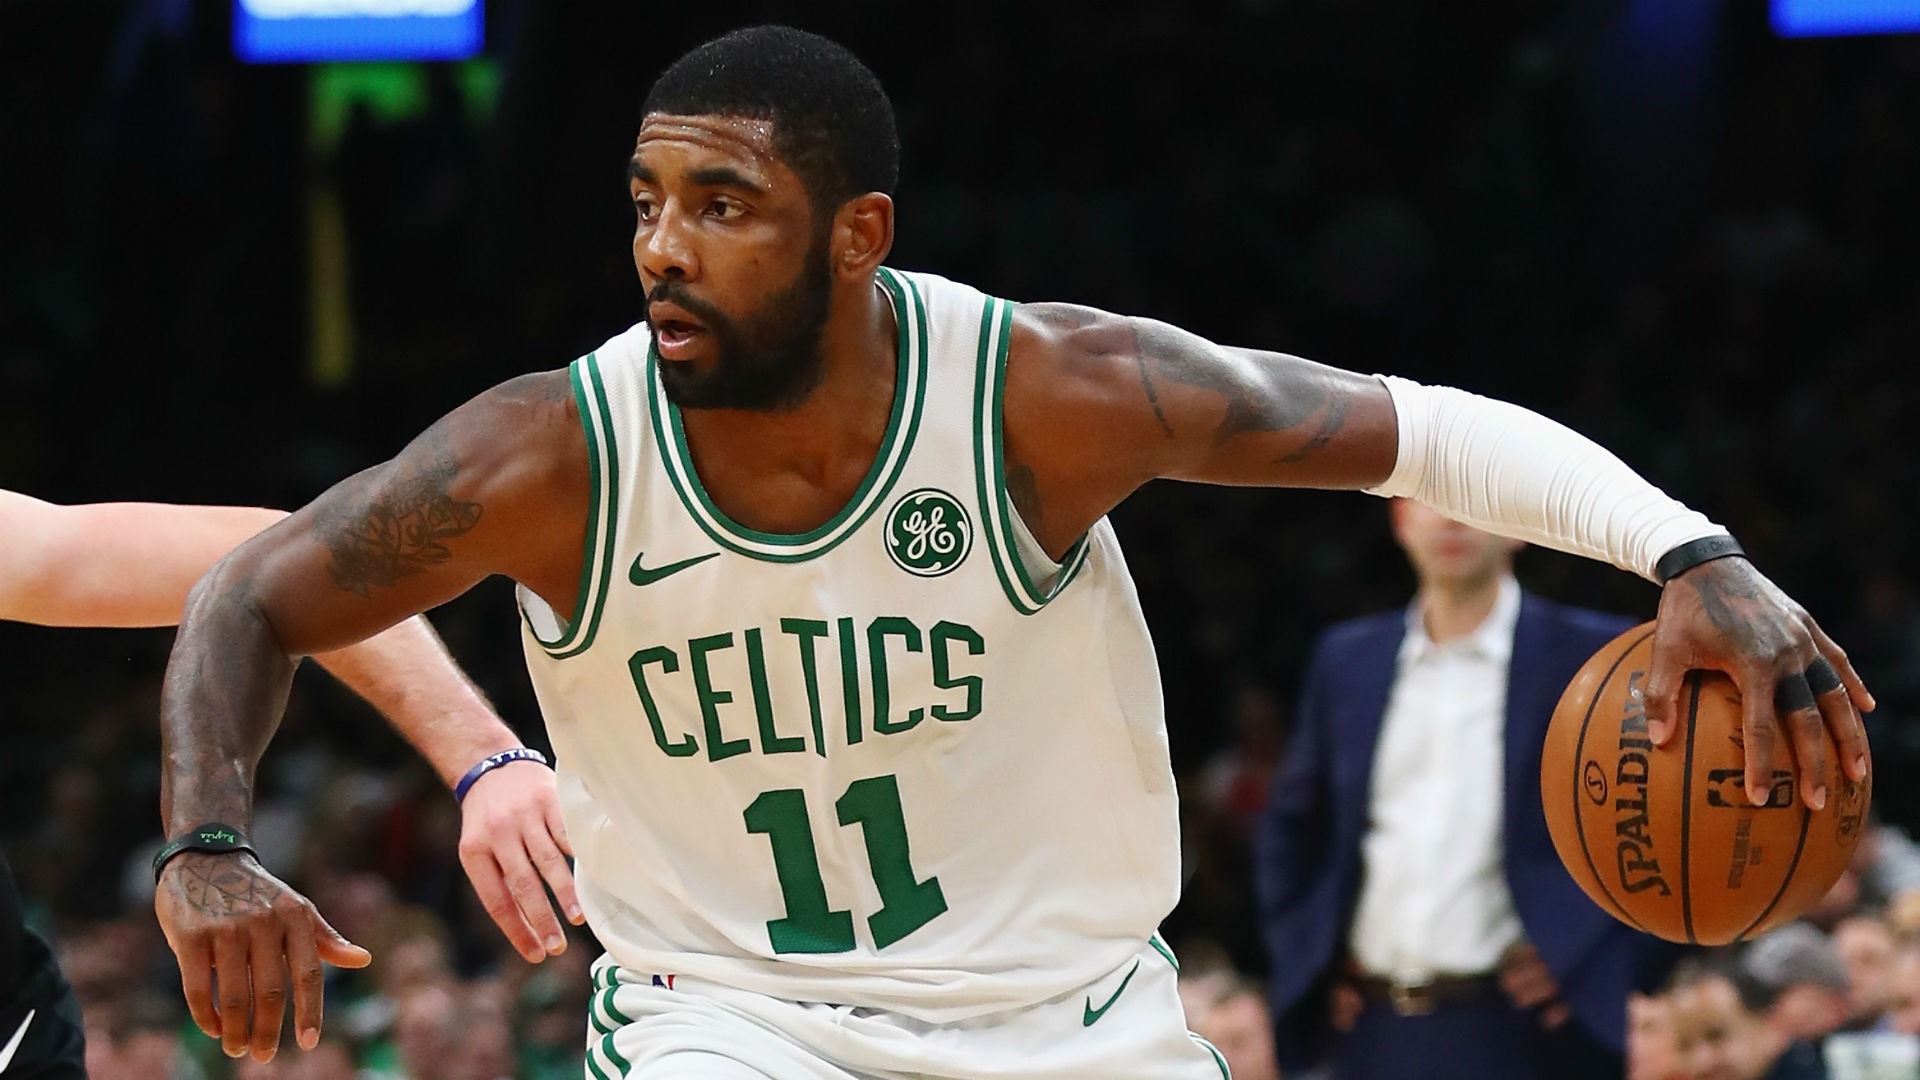 kyrie-irving-getty-111618-ftr.jpg